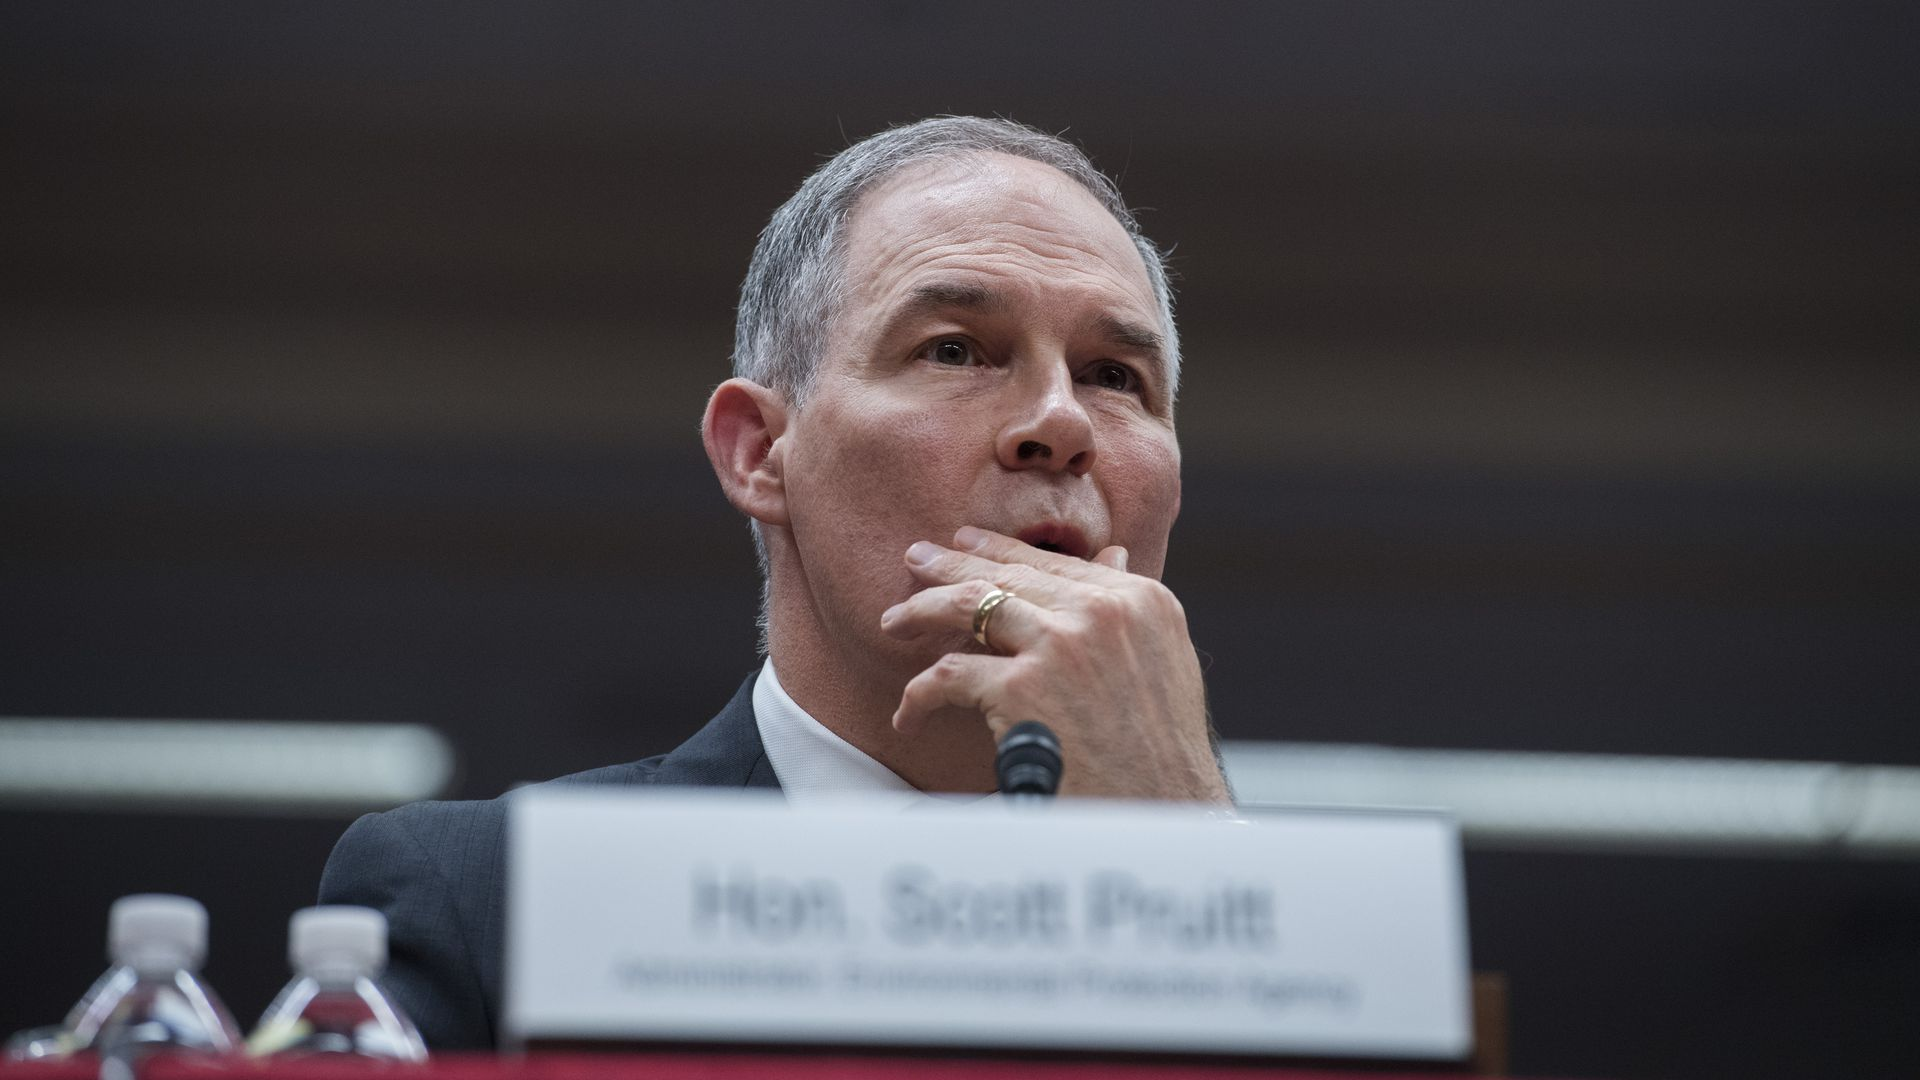 In this image, Scott Pruitt rubs his face at a hearing.